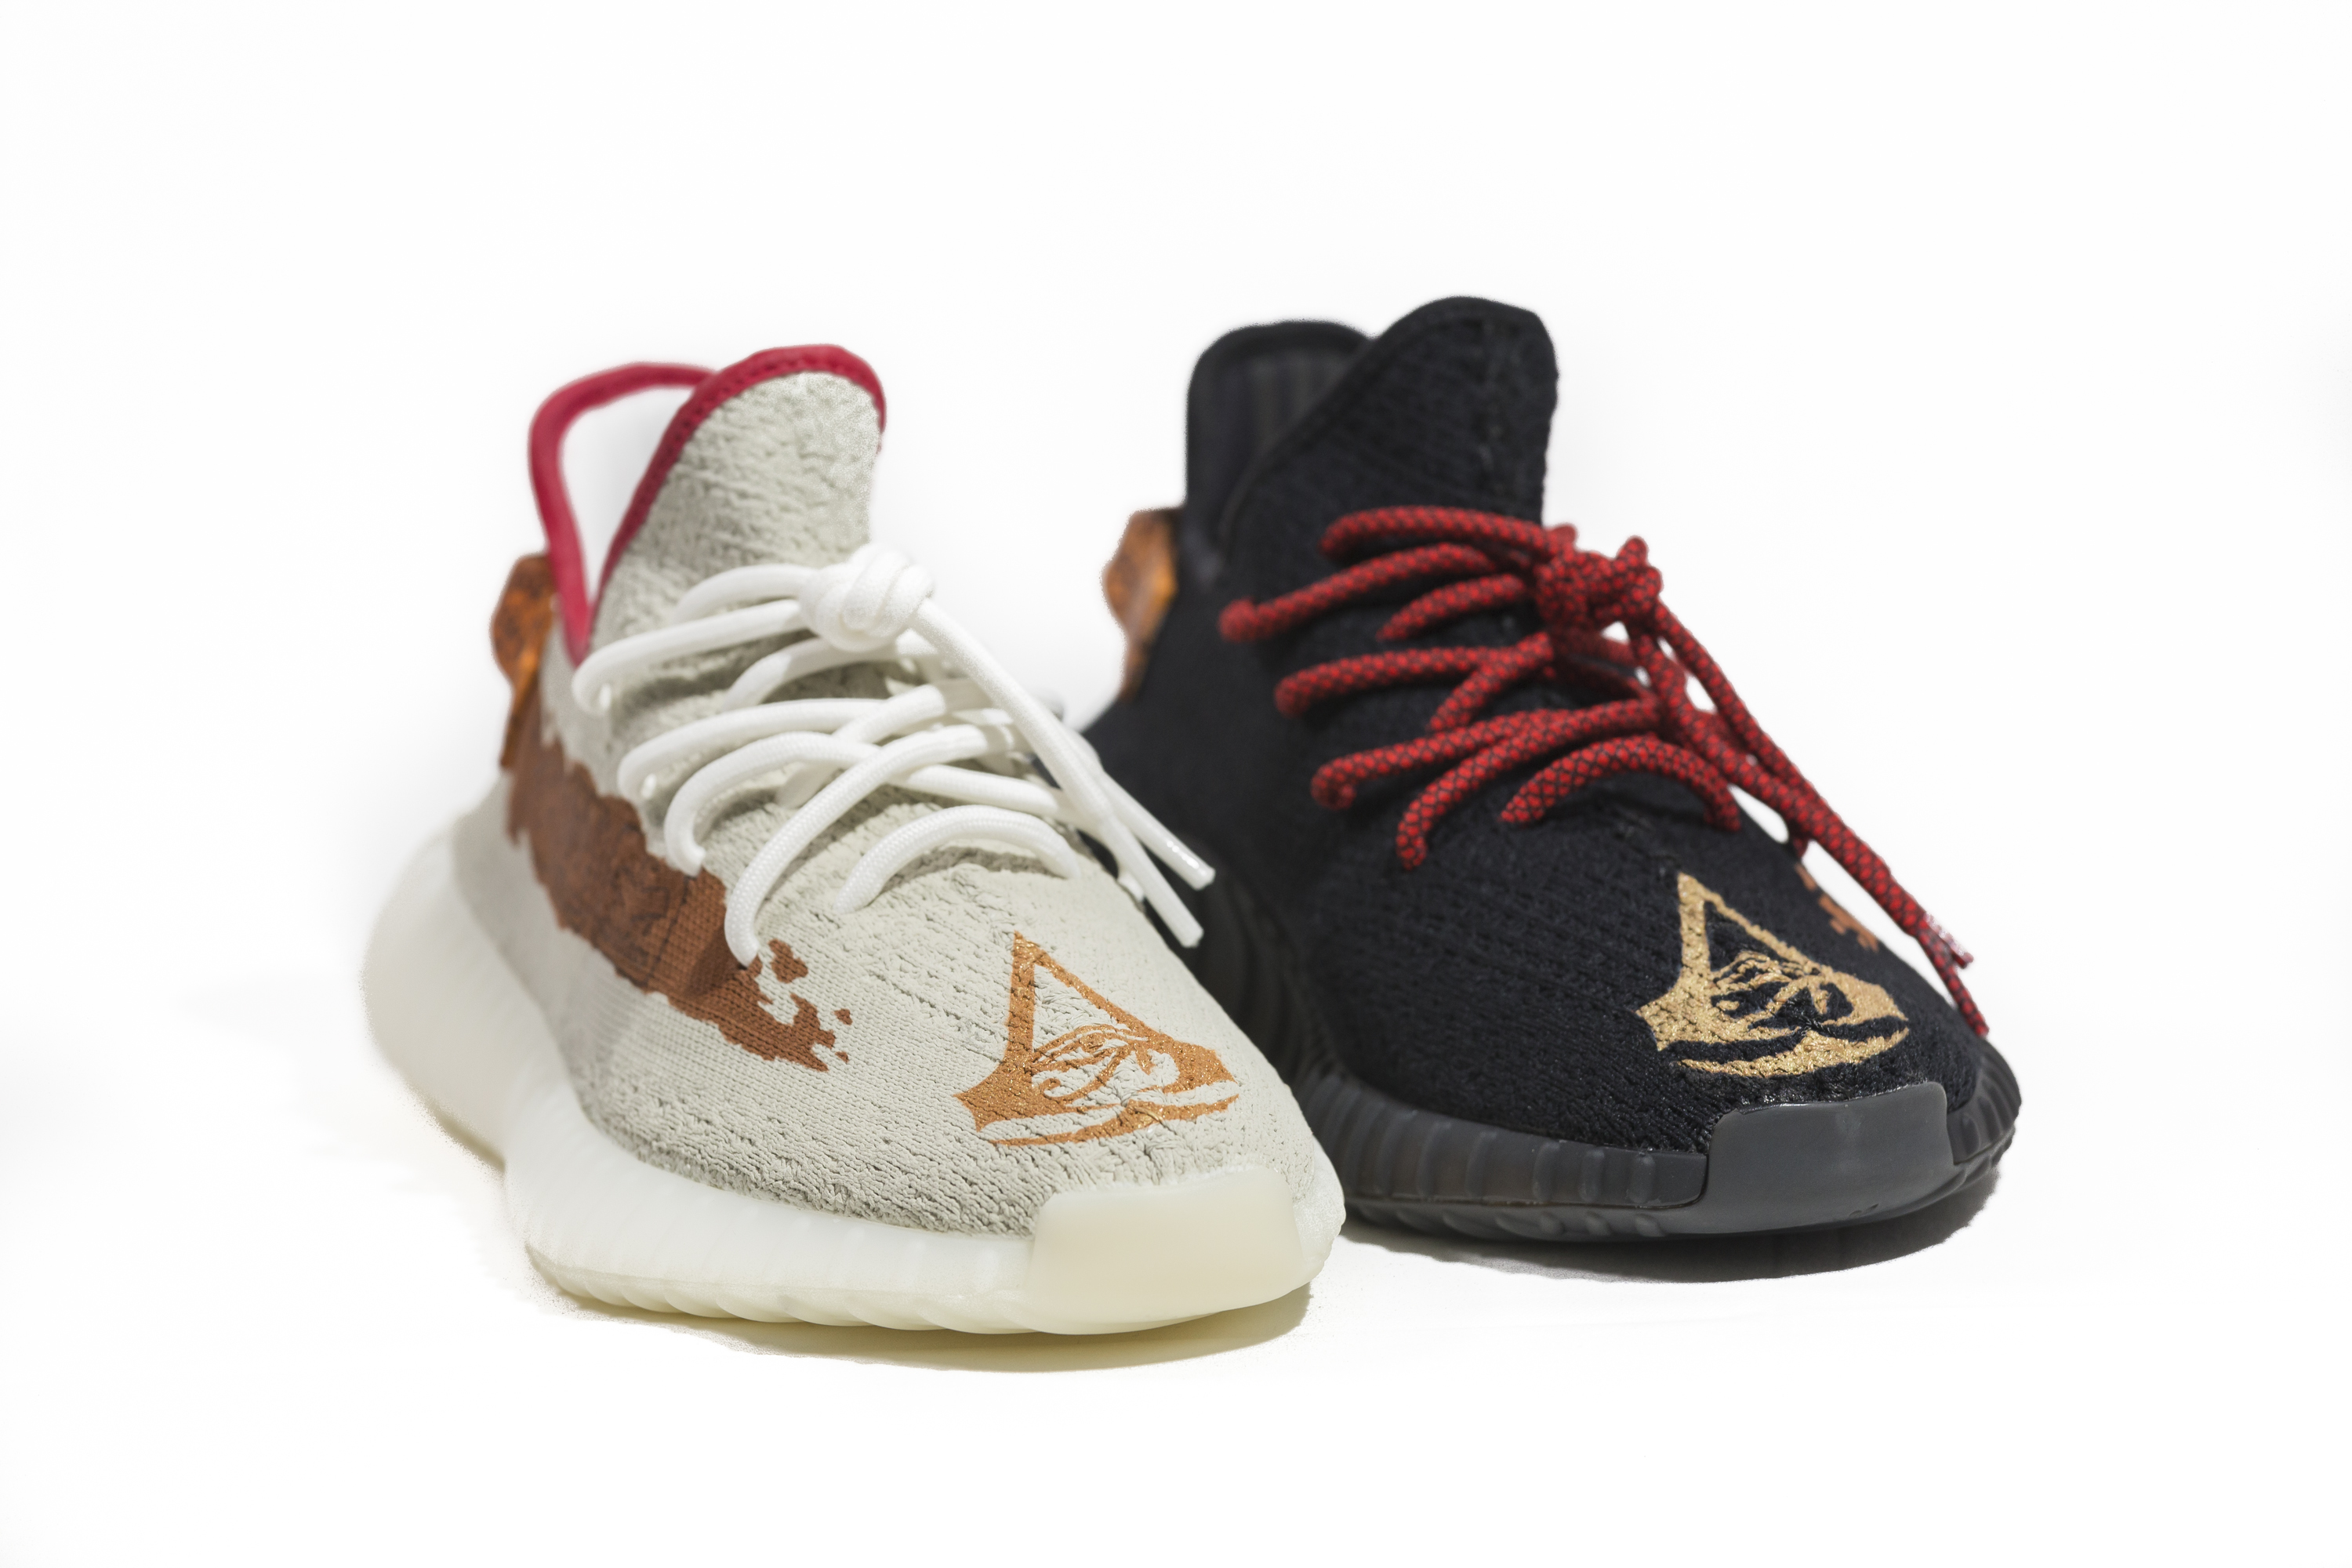 size 40 51987 c1b83 Ubisoft unveils Assassin s Creed-themed Yeezys - Assassin s Creed Origins -  Gamereactor